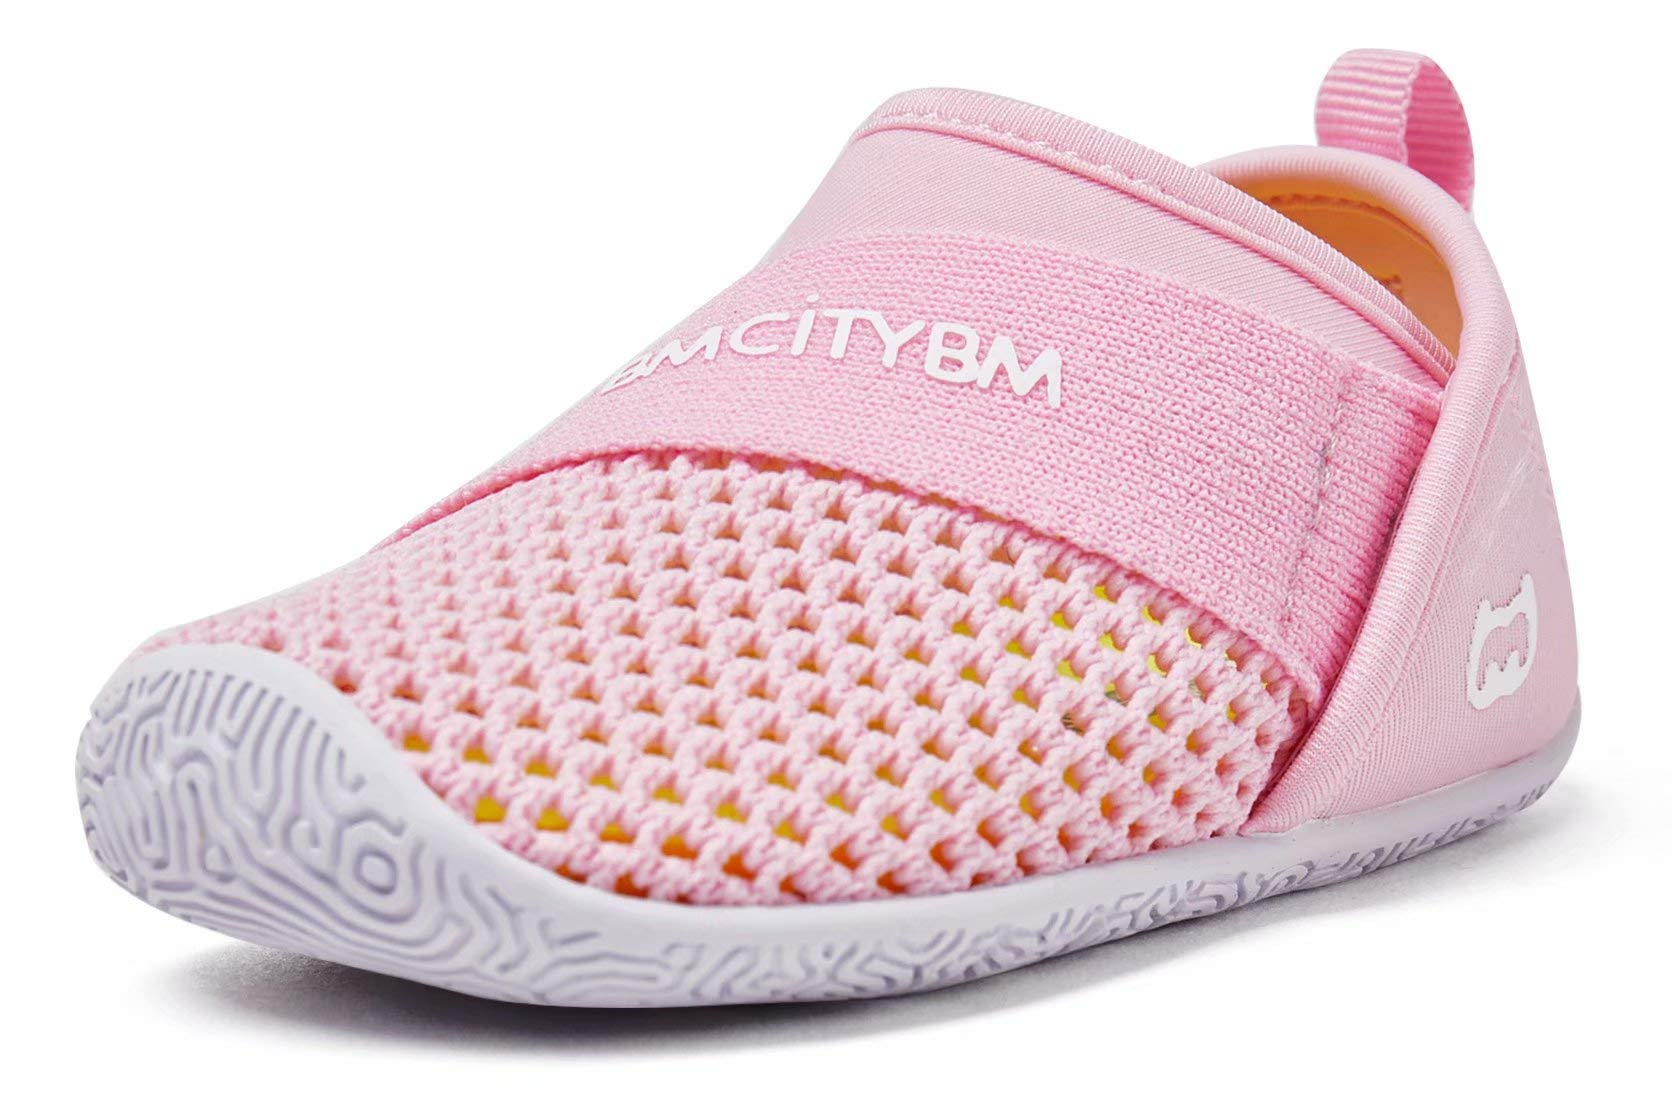 Baby Sneakers Girls Boys Mesh First Walkers Shoes 6 9 12 18 24 Months Pink Size 12-18 Months Infant by BMCiTYBM